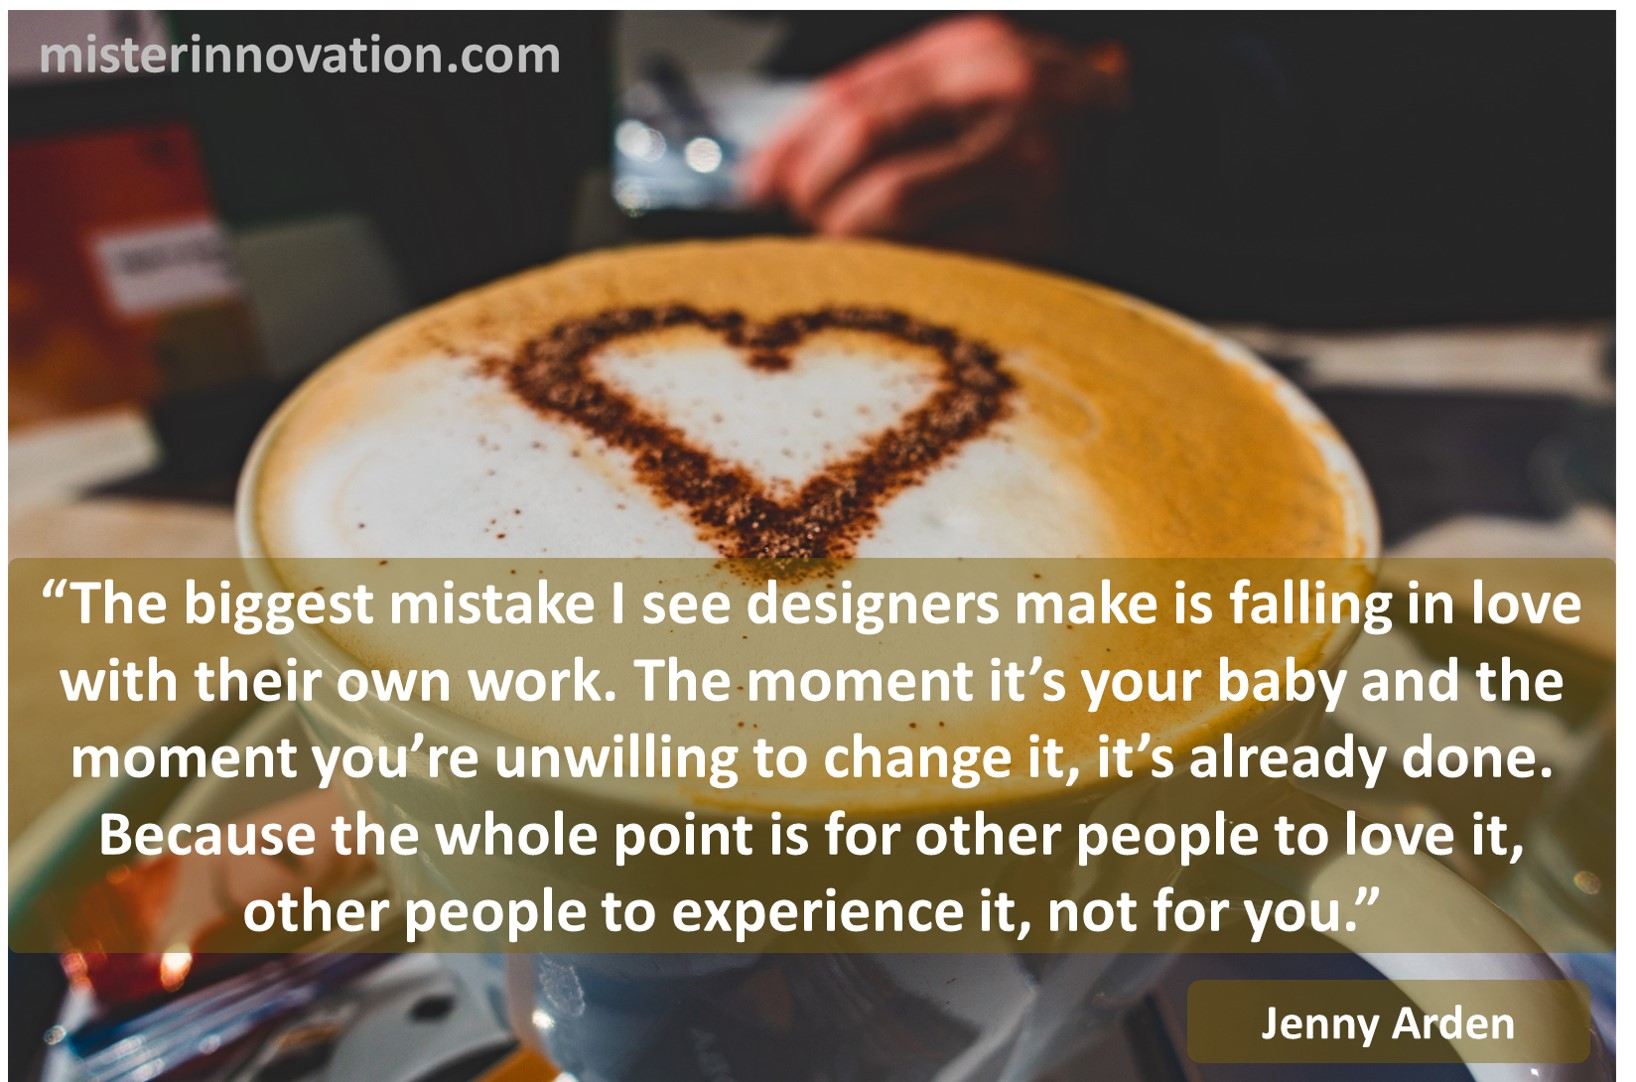 Jenny Arden Quote on Love and Design